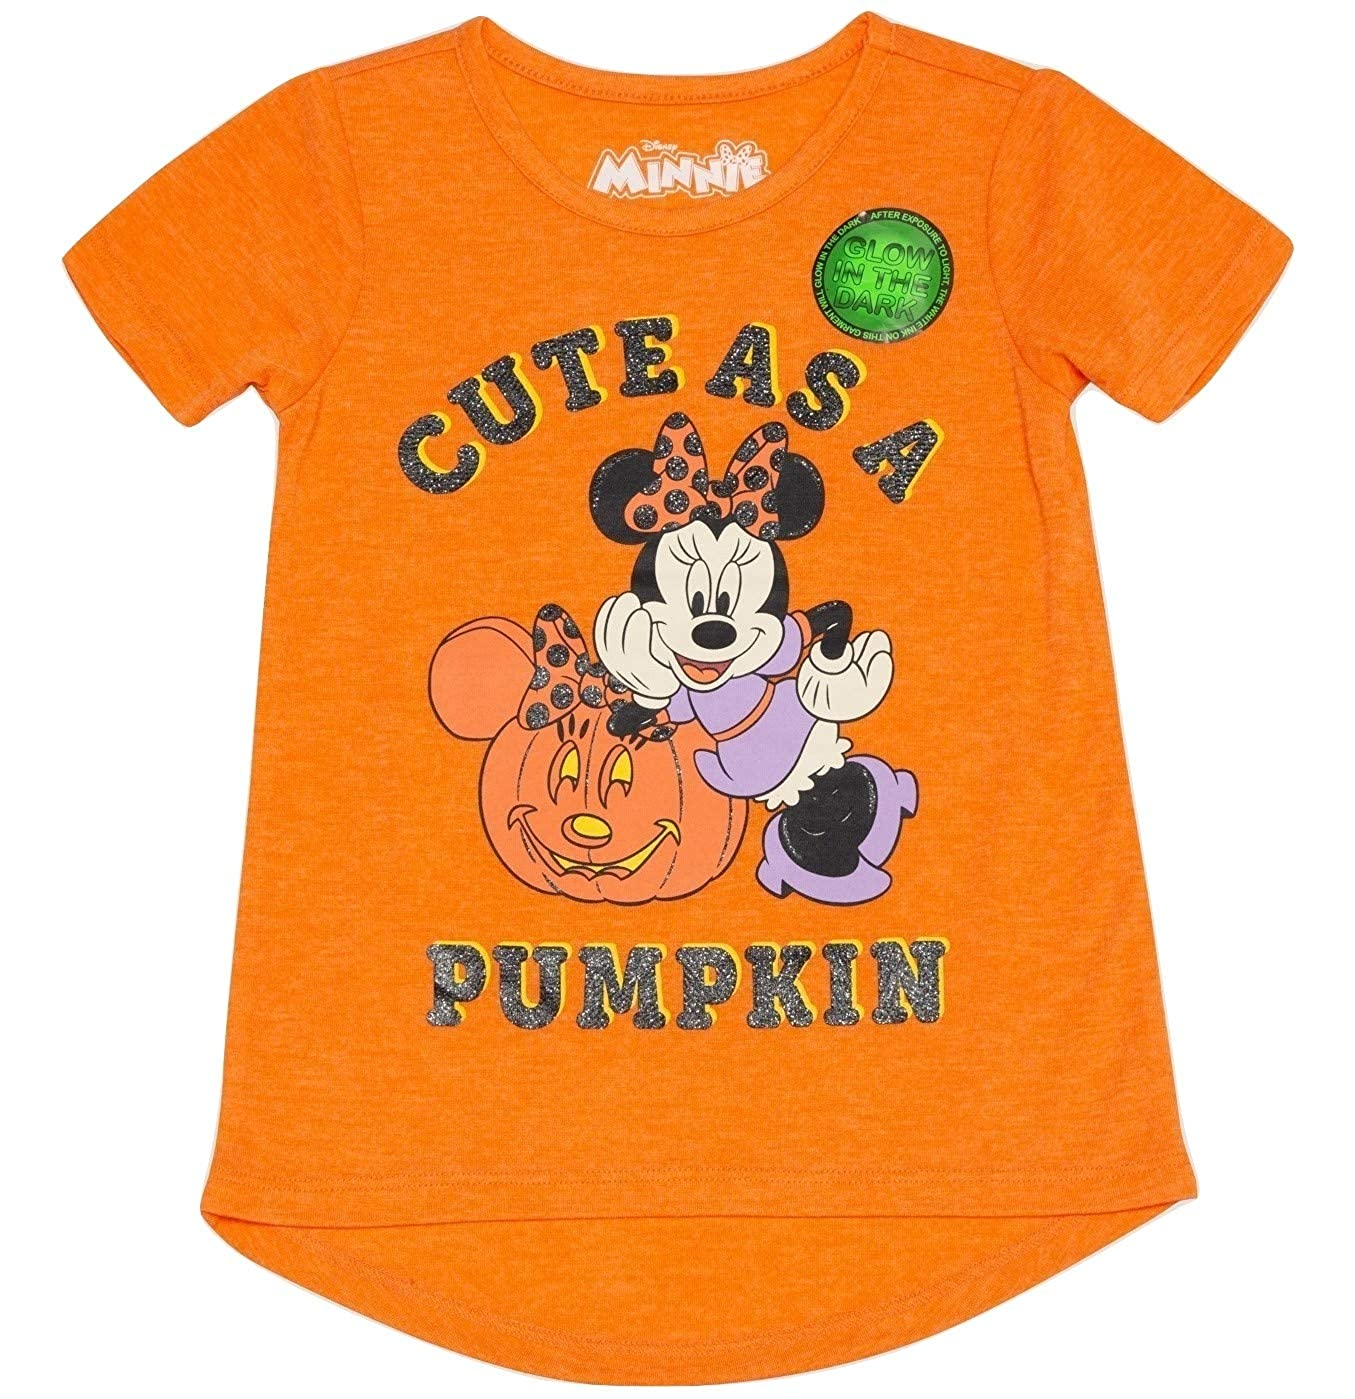 bb90d4599ed Amazon.com  Minnie Mouse Disney Toddler Girls Glow in The Dark Halloween T- Shirt  Clothing